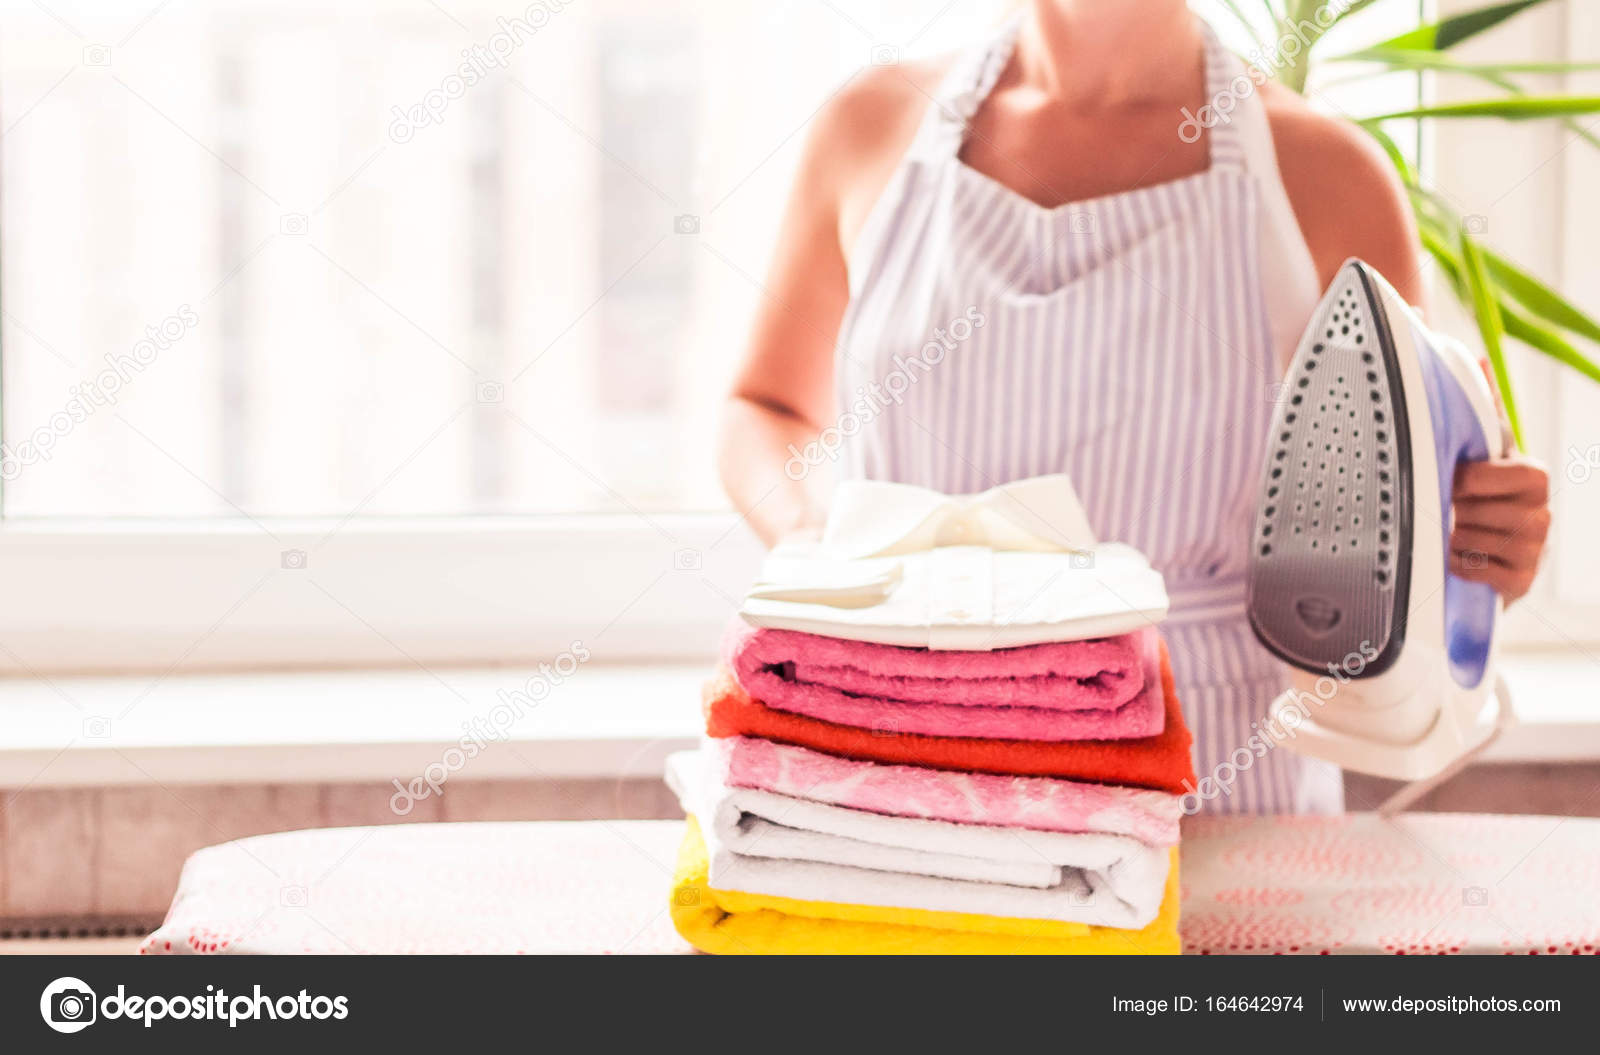 Ironing Clothes On Ironing Board, Ironed Clothes Ironing, Laundry, Clothes,  Housekeeping And